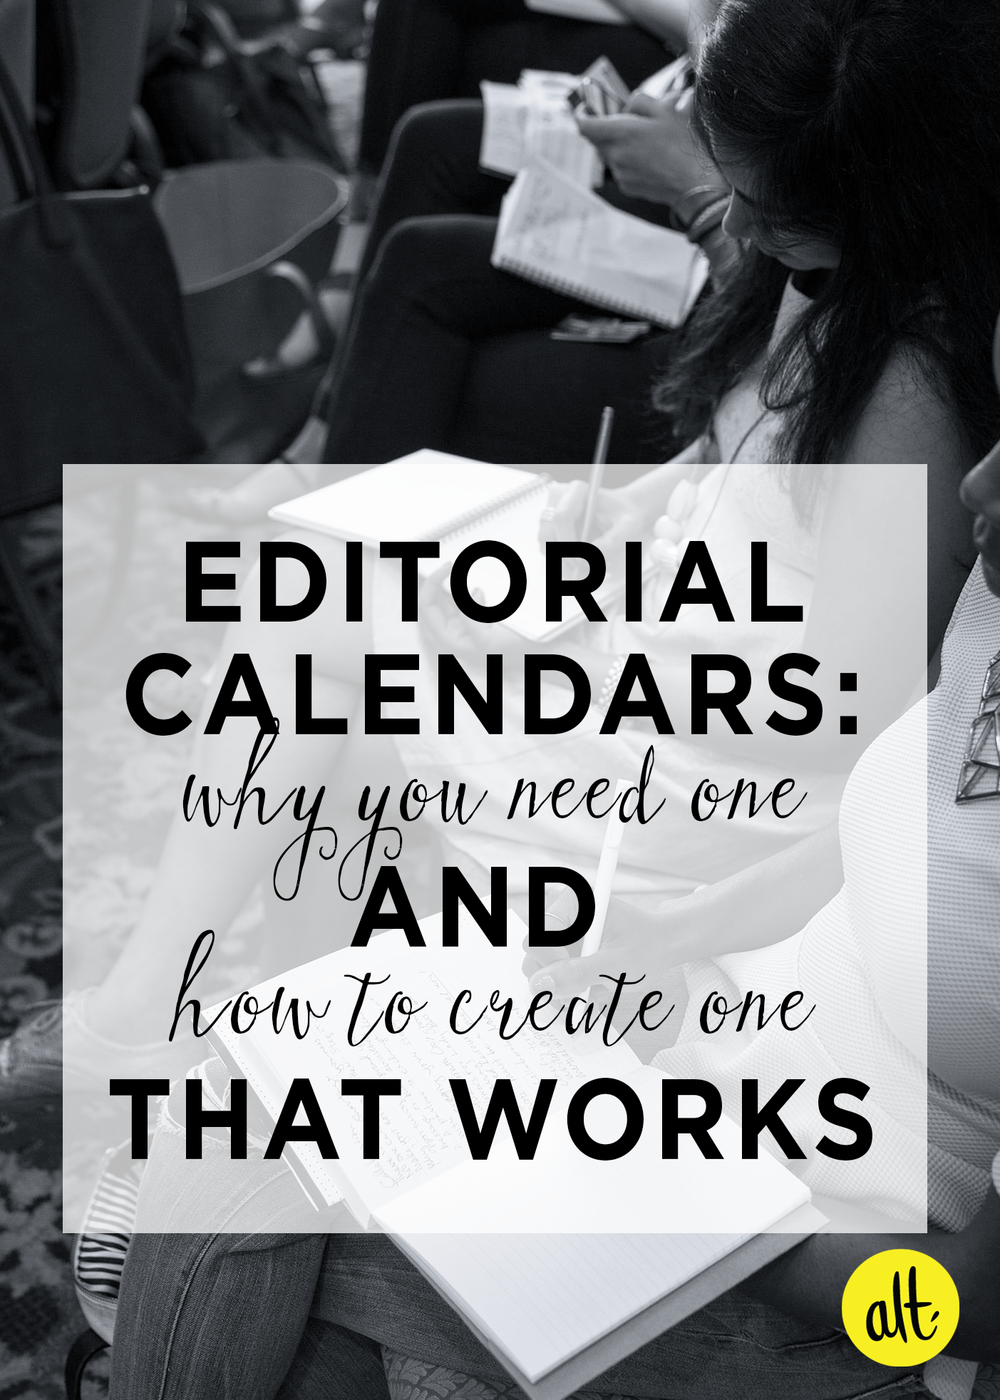 Why-You-Need-An-Editorial-Calendar-and-How-to-Create-One-That-Works-For-You